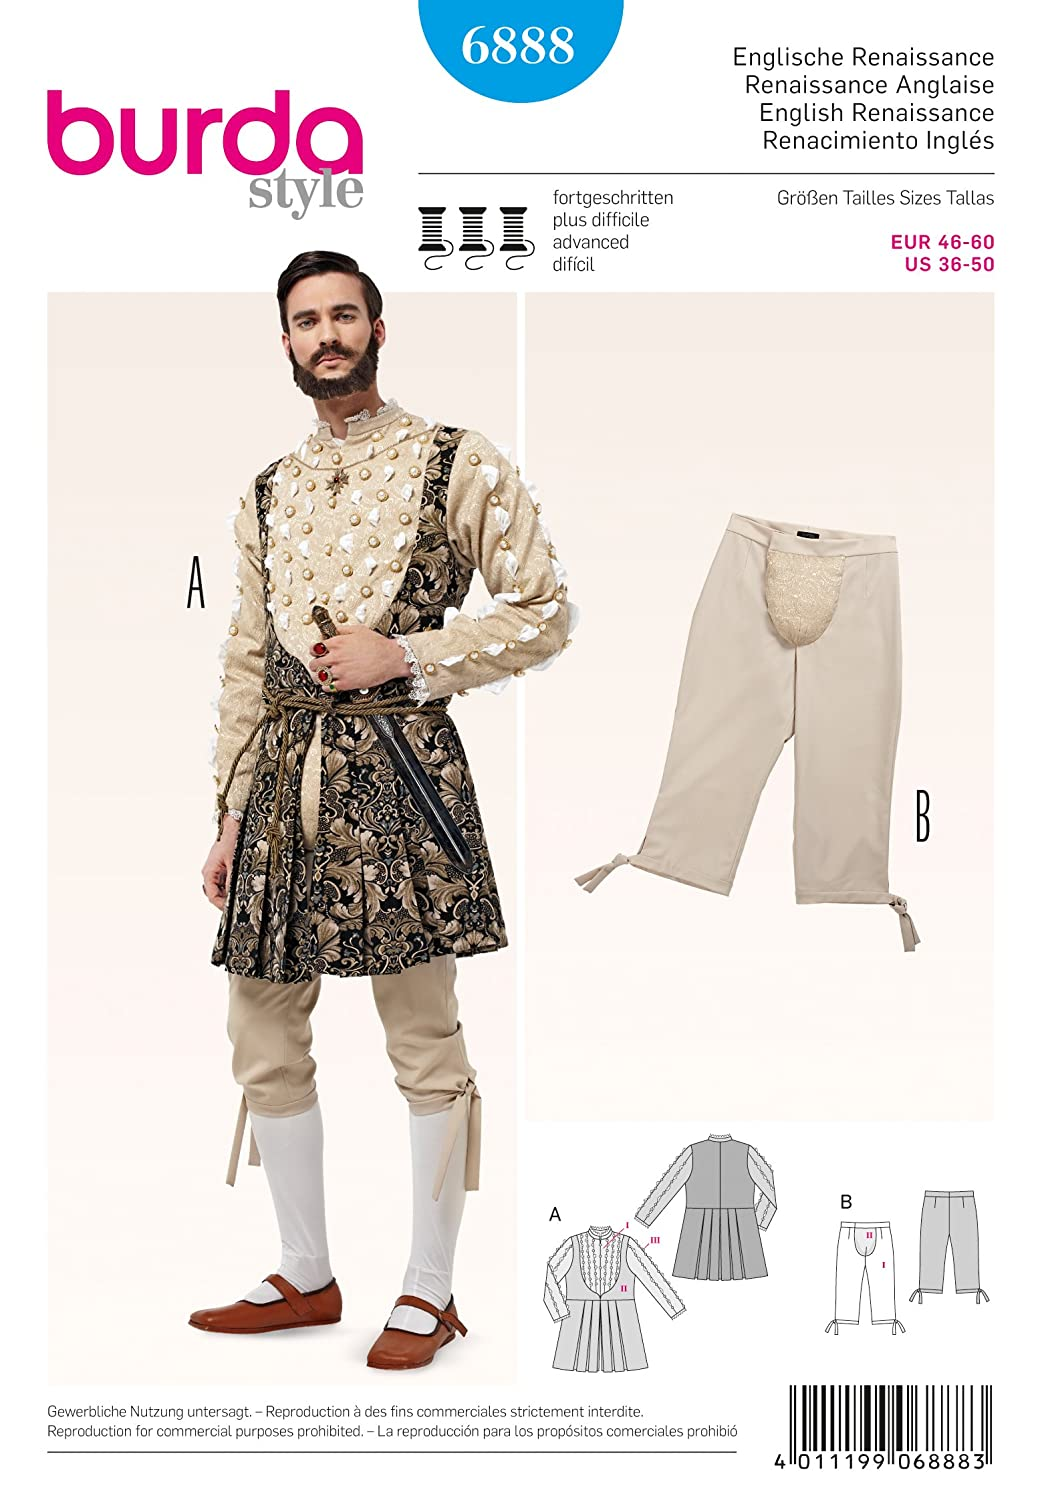 6888 Burda Men's English Renaissance Costume Sewing Pattern Sizes 36-50 by Burda   B00LGFQS22